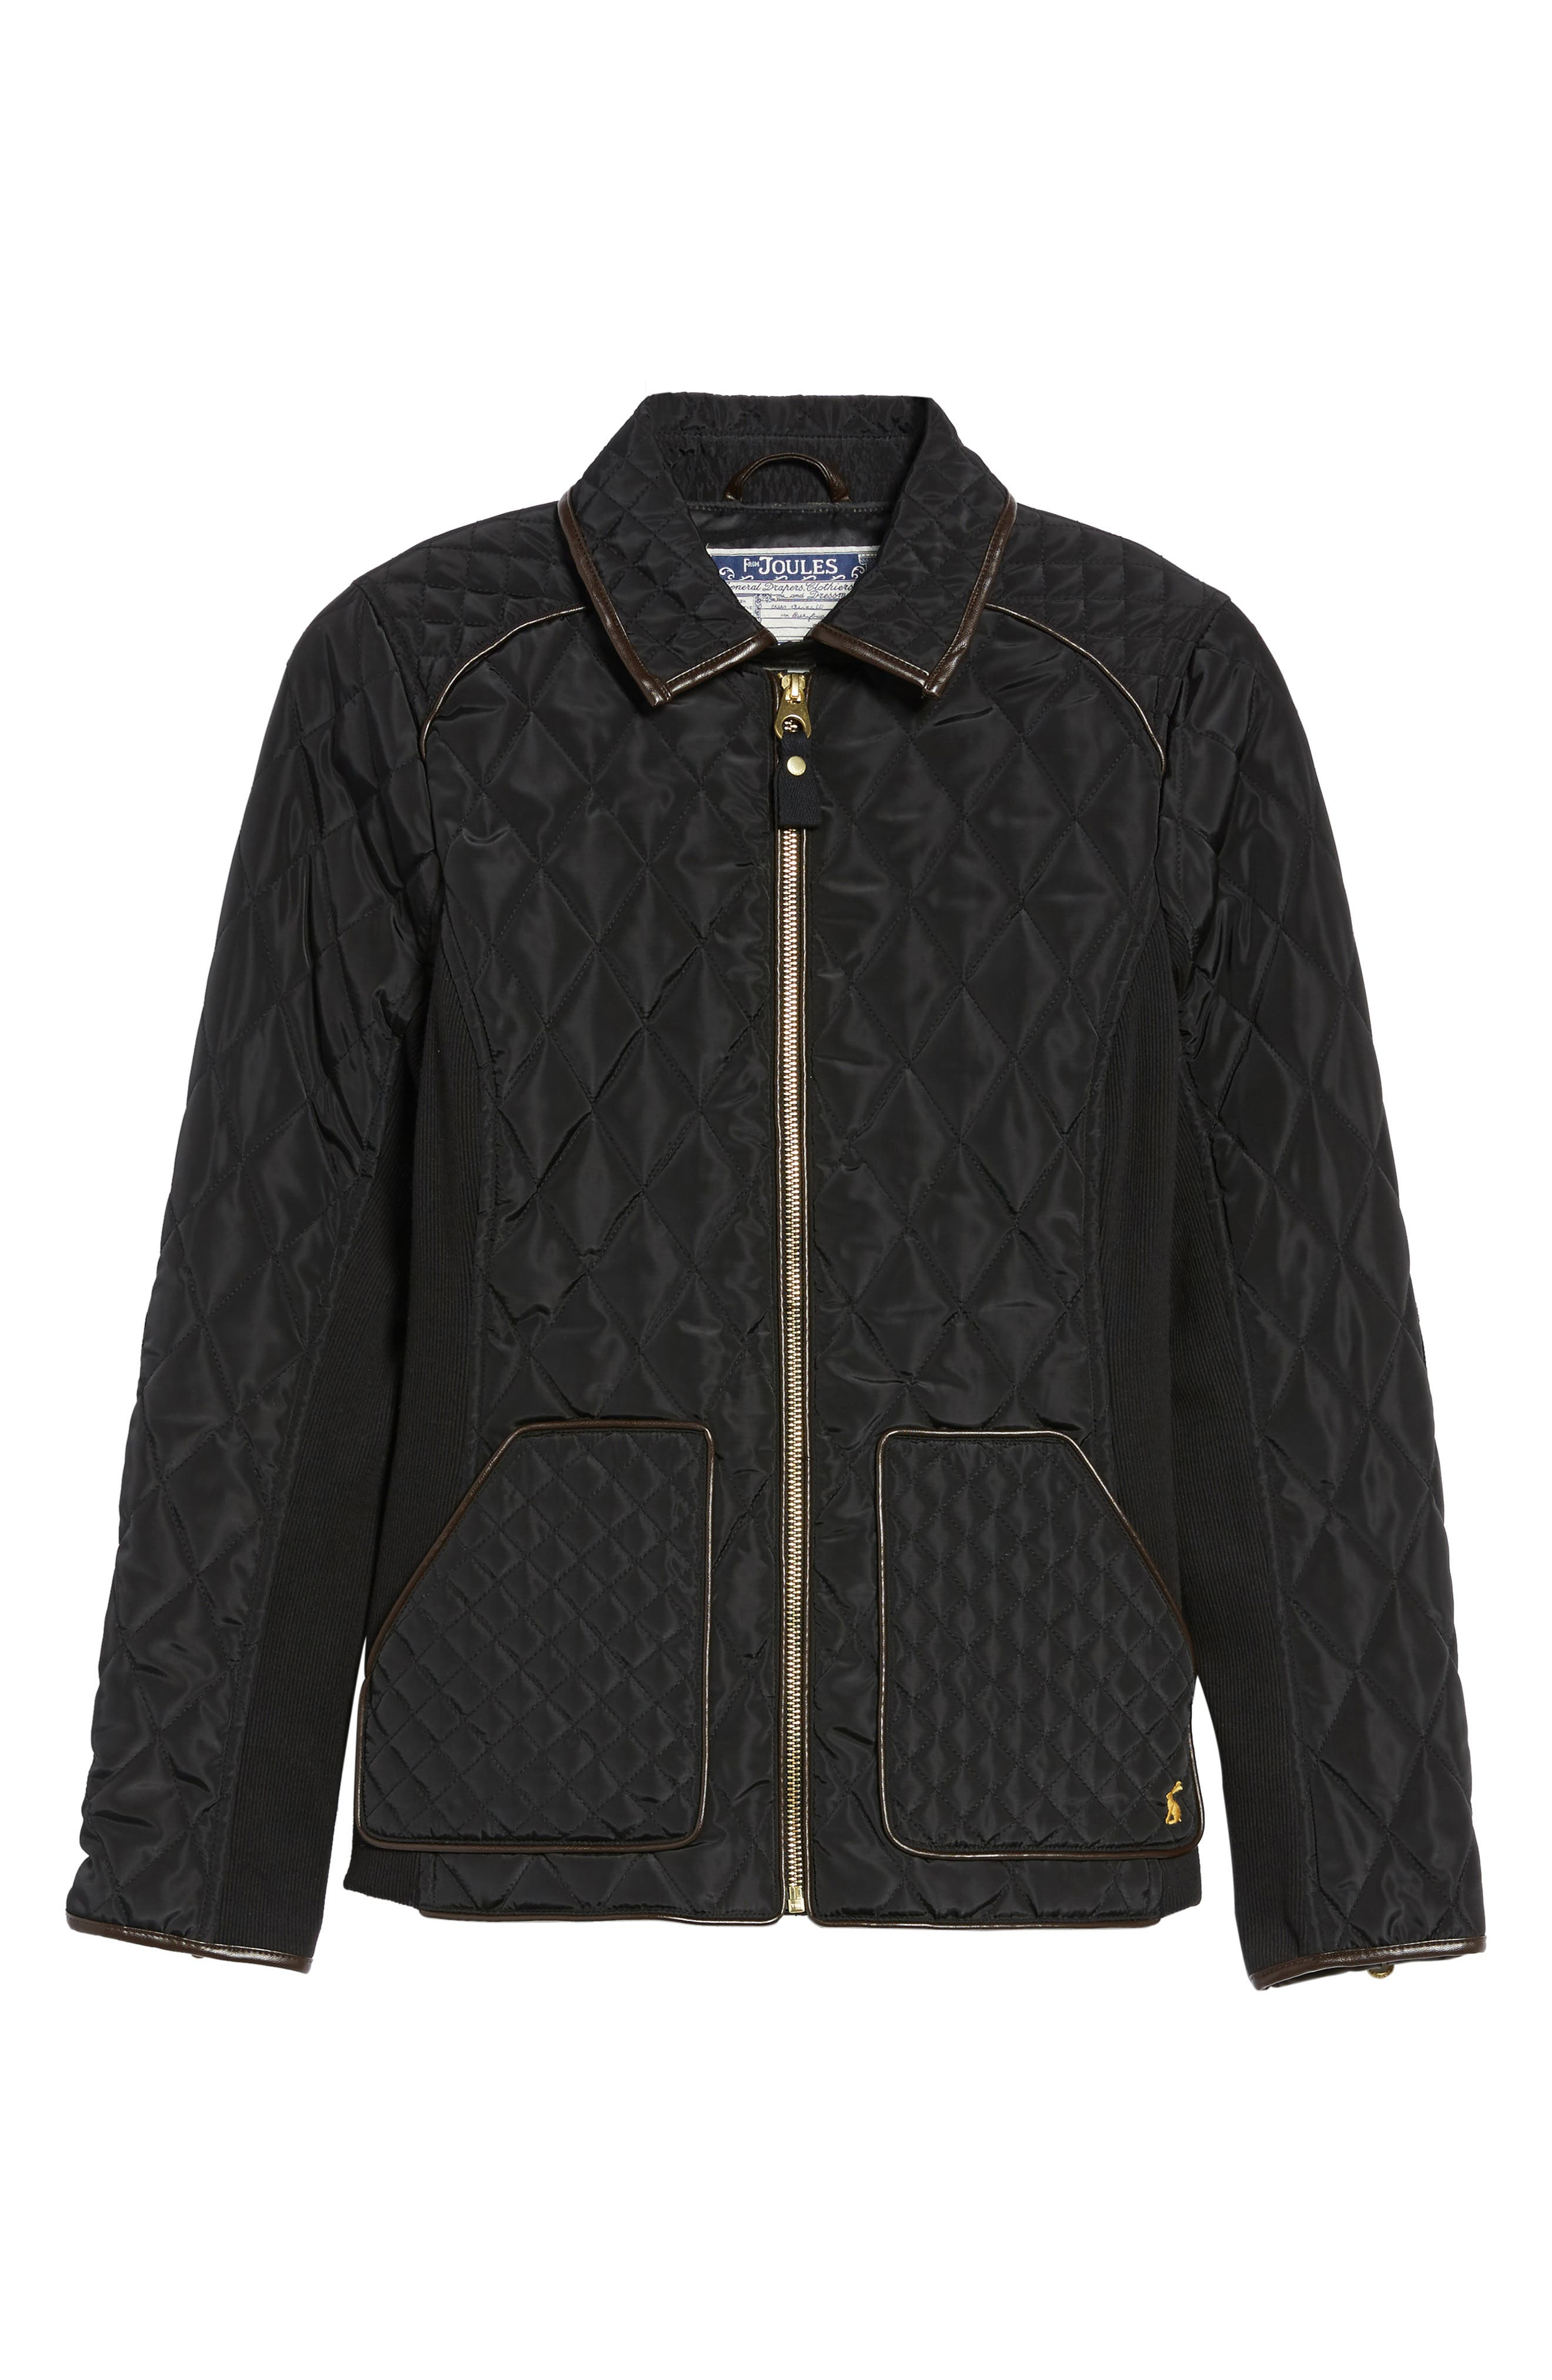 Warm Welcome Quilted Jacket,                             Alternate thumbnail 6, color,                             001